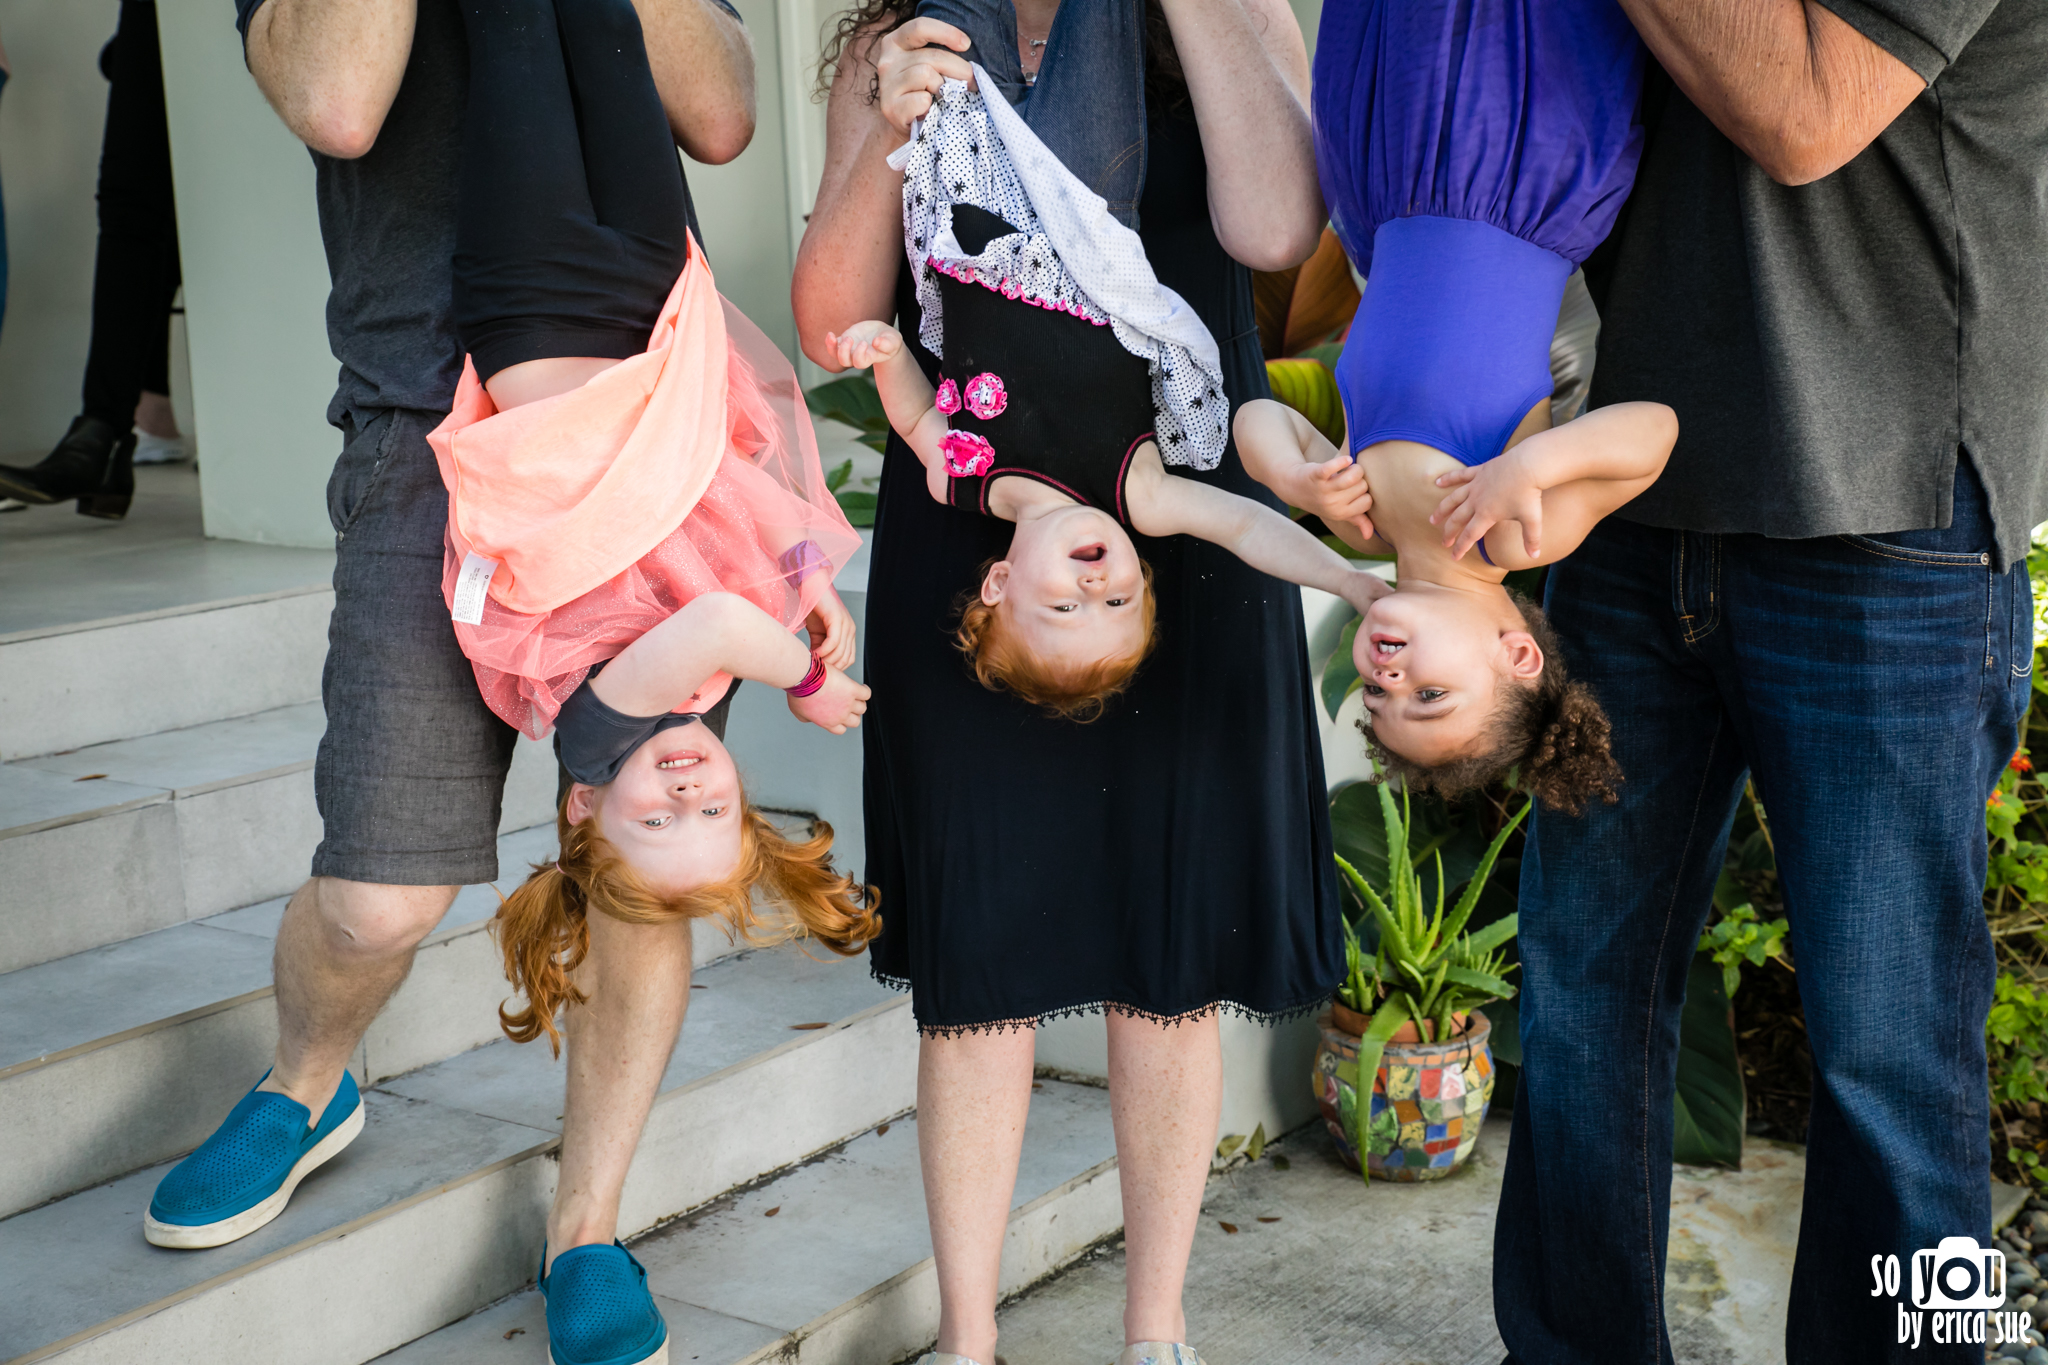 family-photography-so-you-by-erica-sue-ft-lauderdale-fl-florida-trolls-movie-birthday-party-2869.jpg